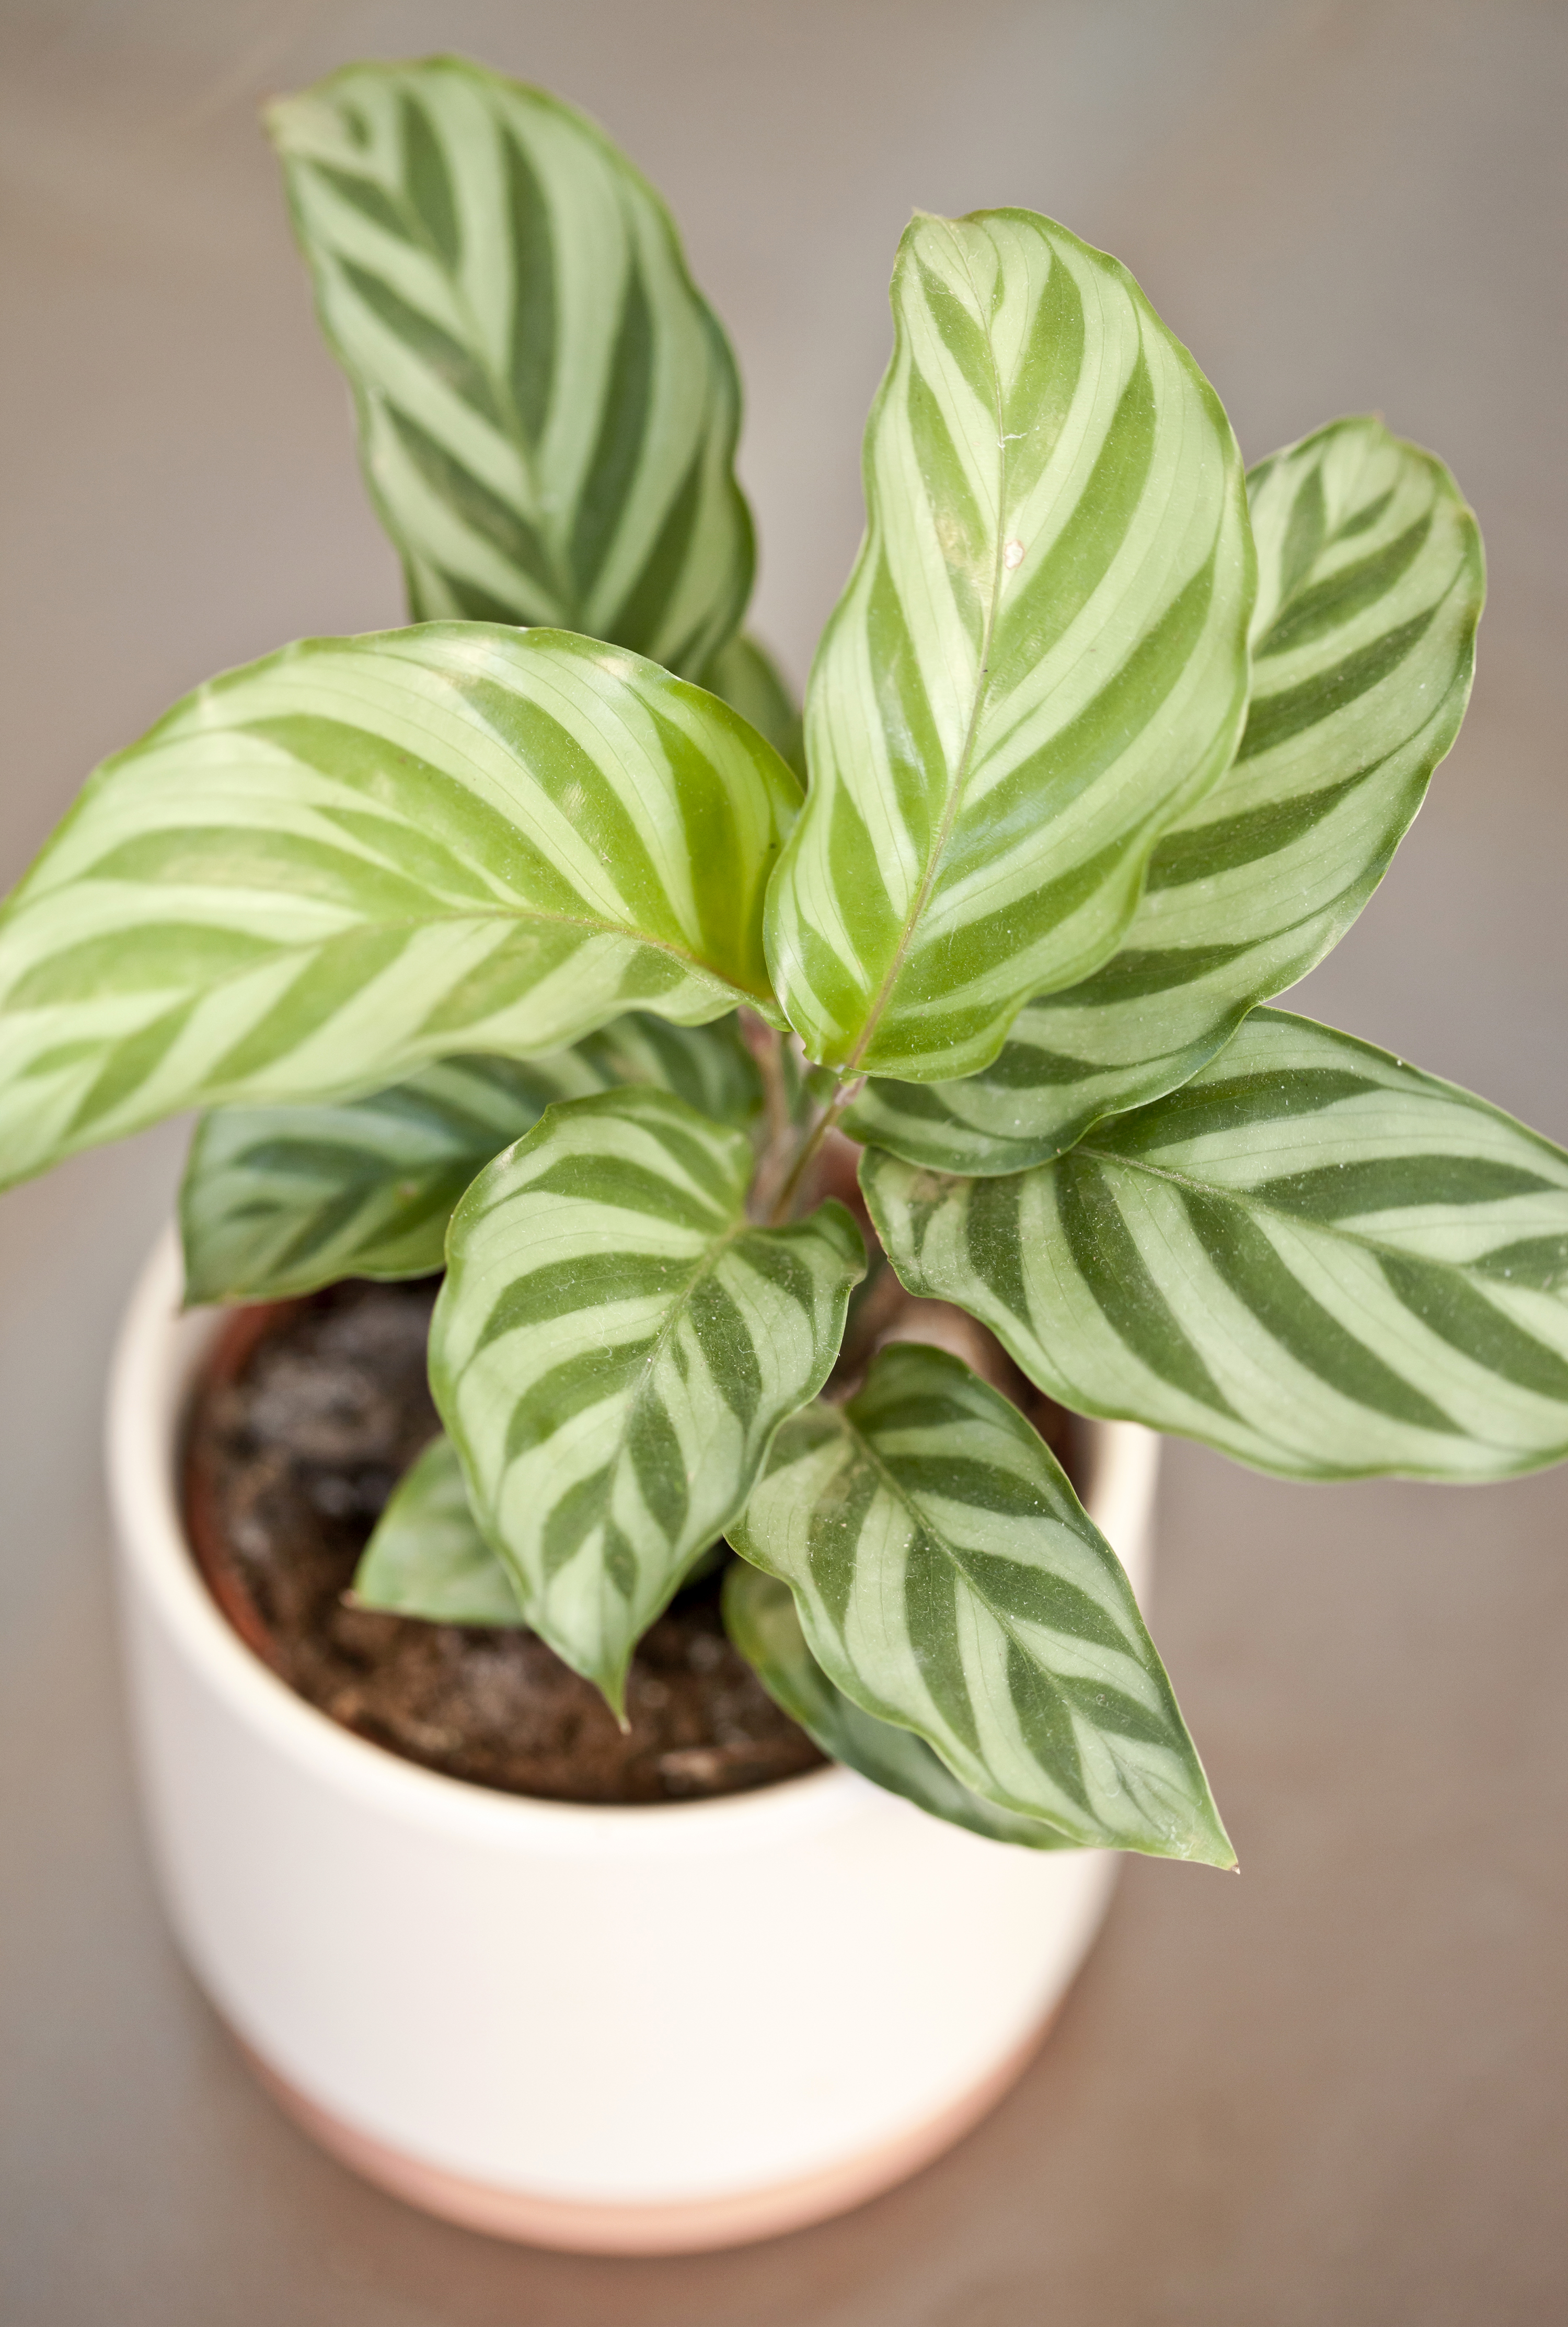 20 Best Bathroom Plants   Houseplants for Warm, Humid Spaces ...